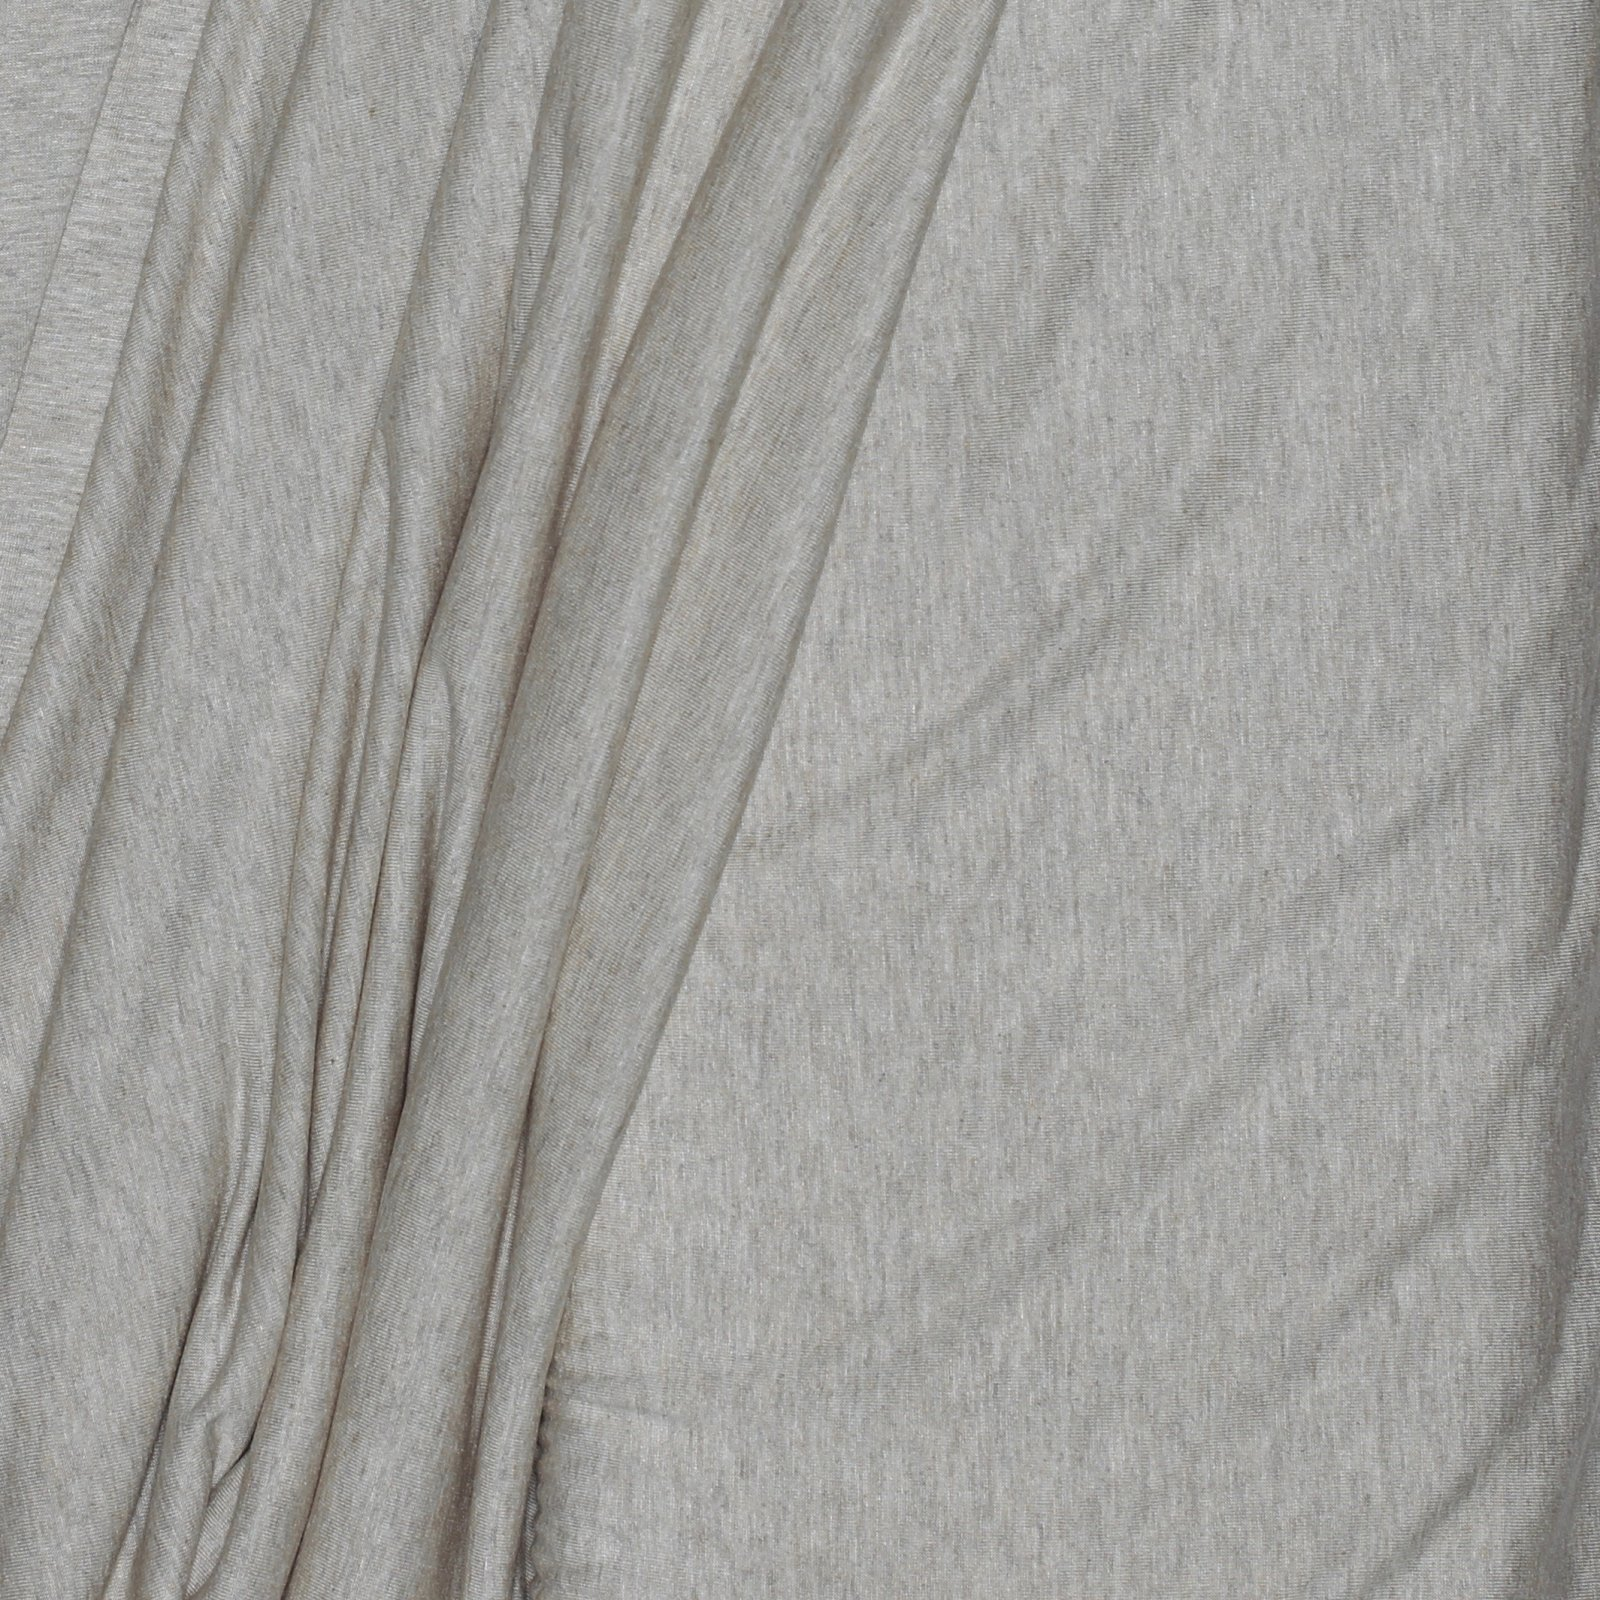 Natural Heathered Rayon Knit